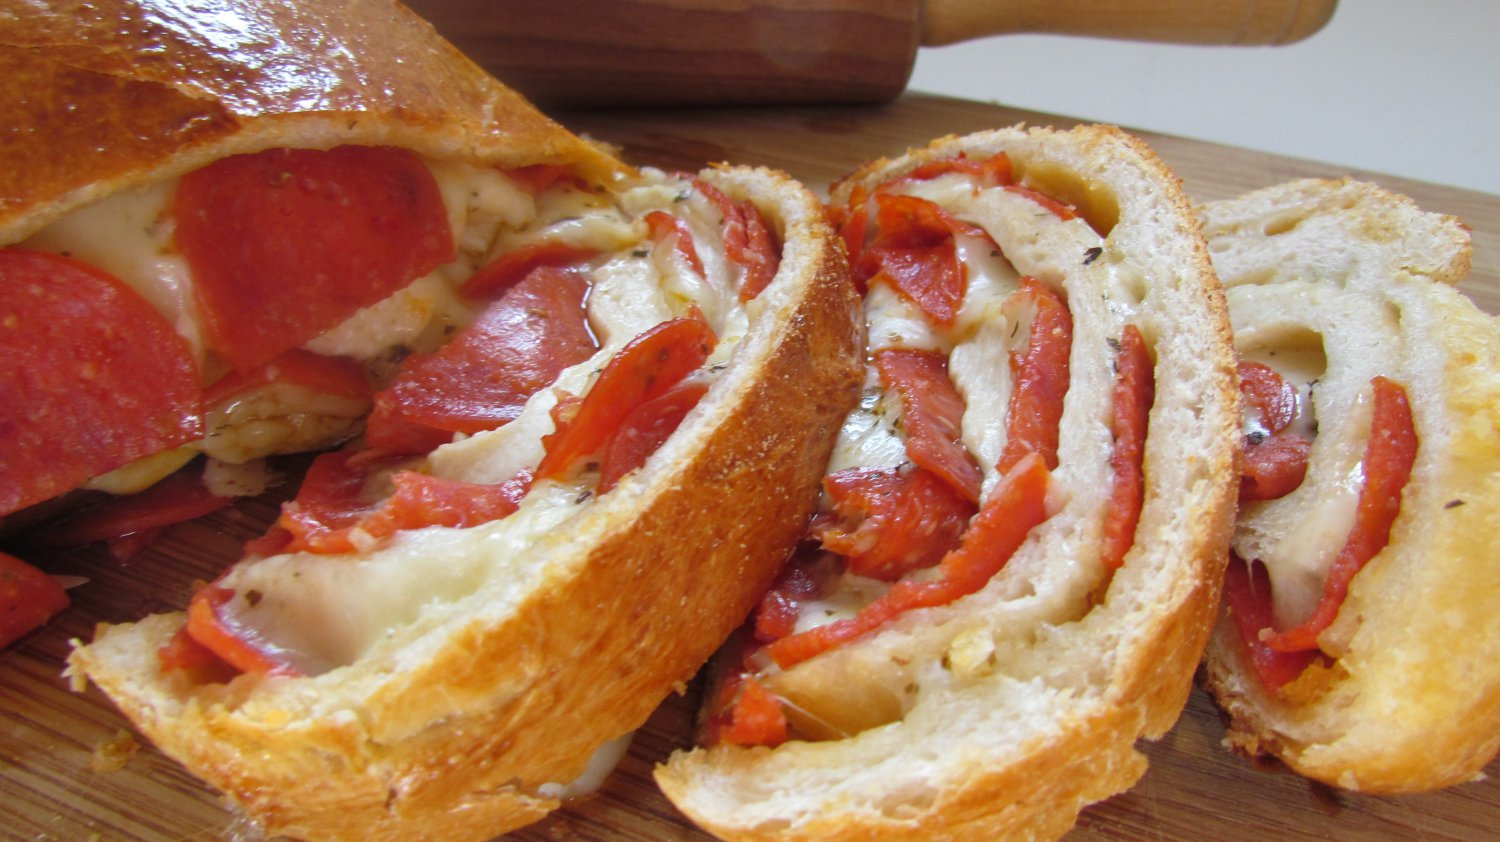 Pepperoni, Onions and Cheese Stromboli Bread